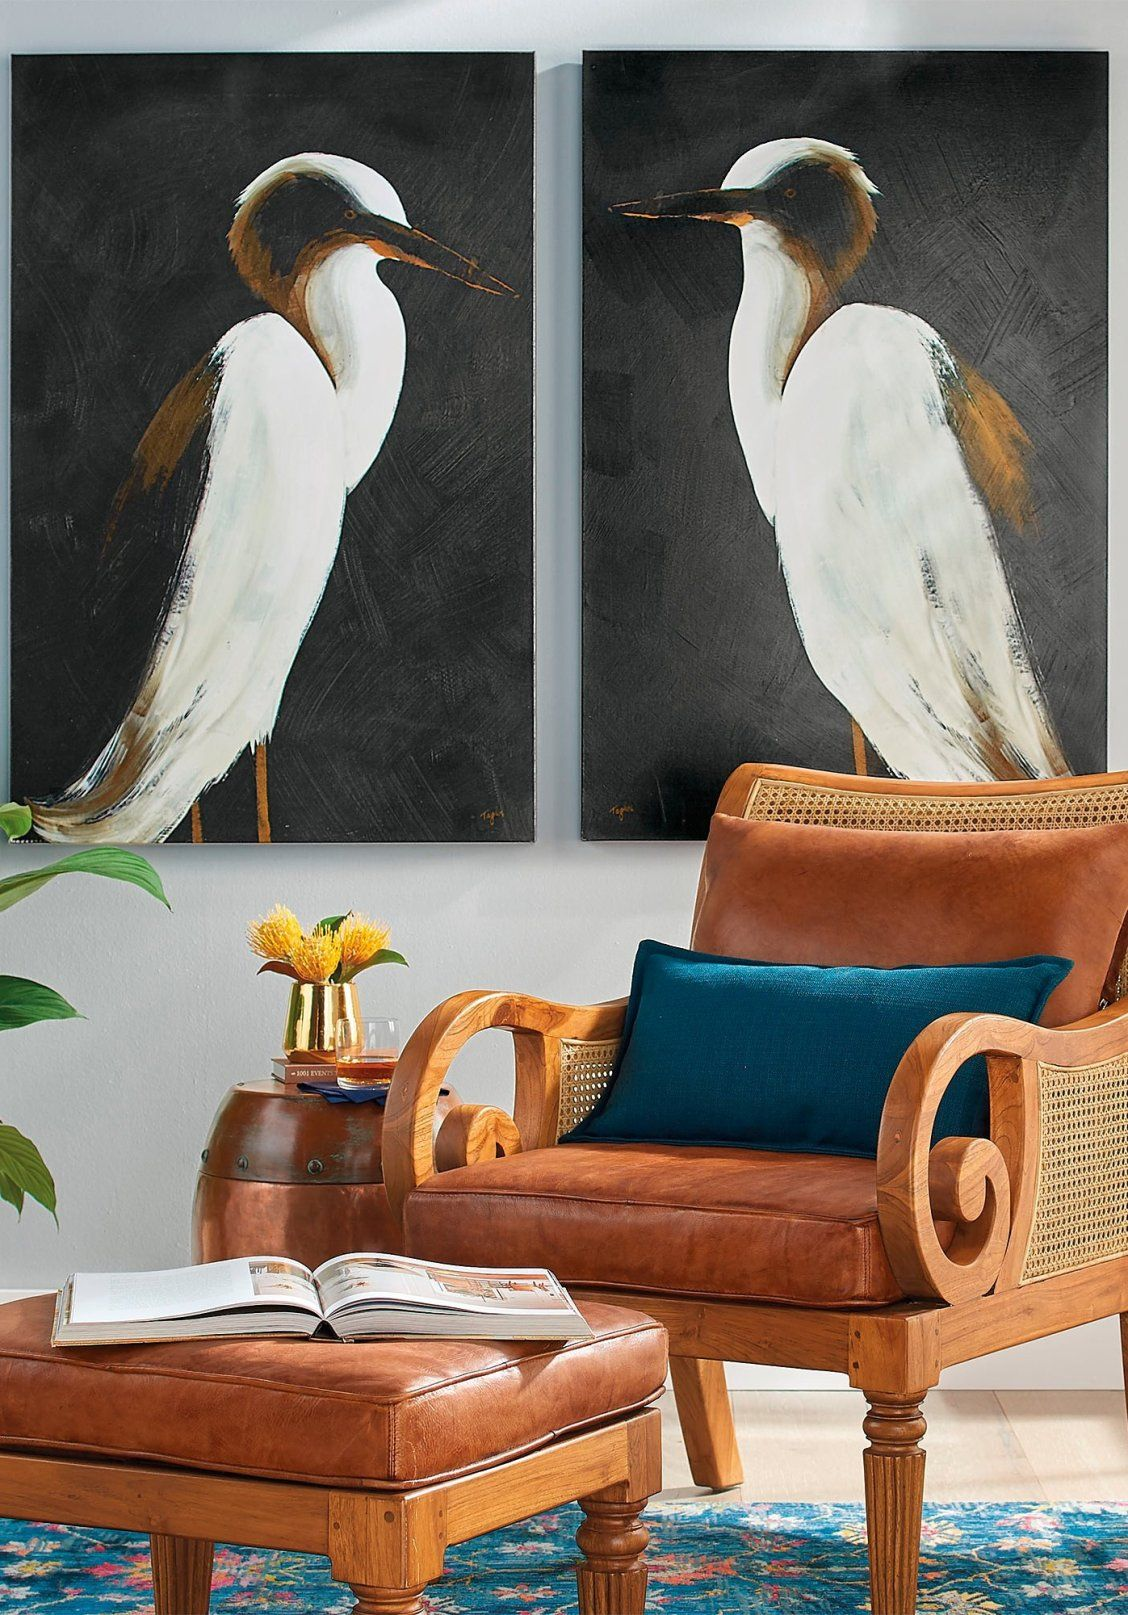 Big Art Is A Huge Trend And Our White Heron Artwork Captures One Of The Larger More Majestic Birds Of North America Deer Wall Art Wall Art Art Gallery Wall